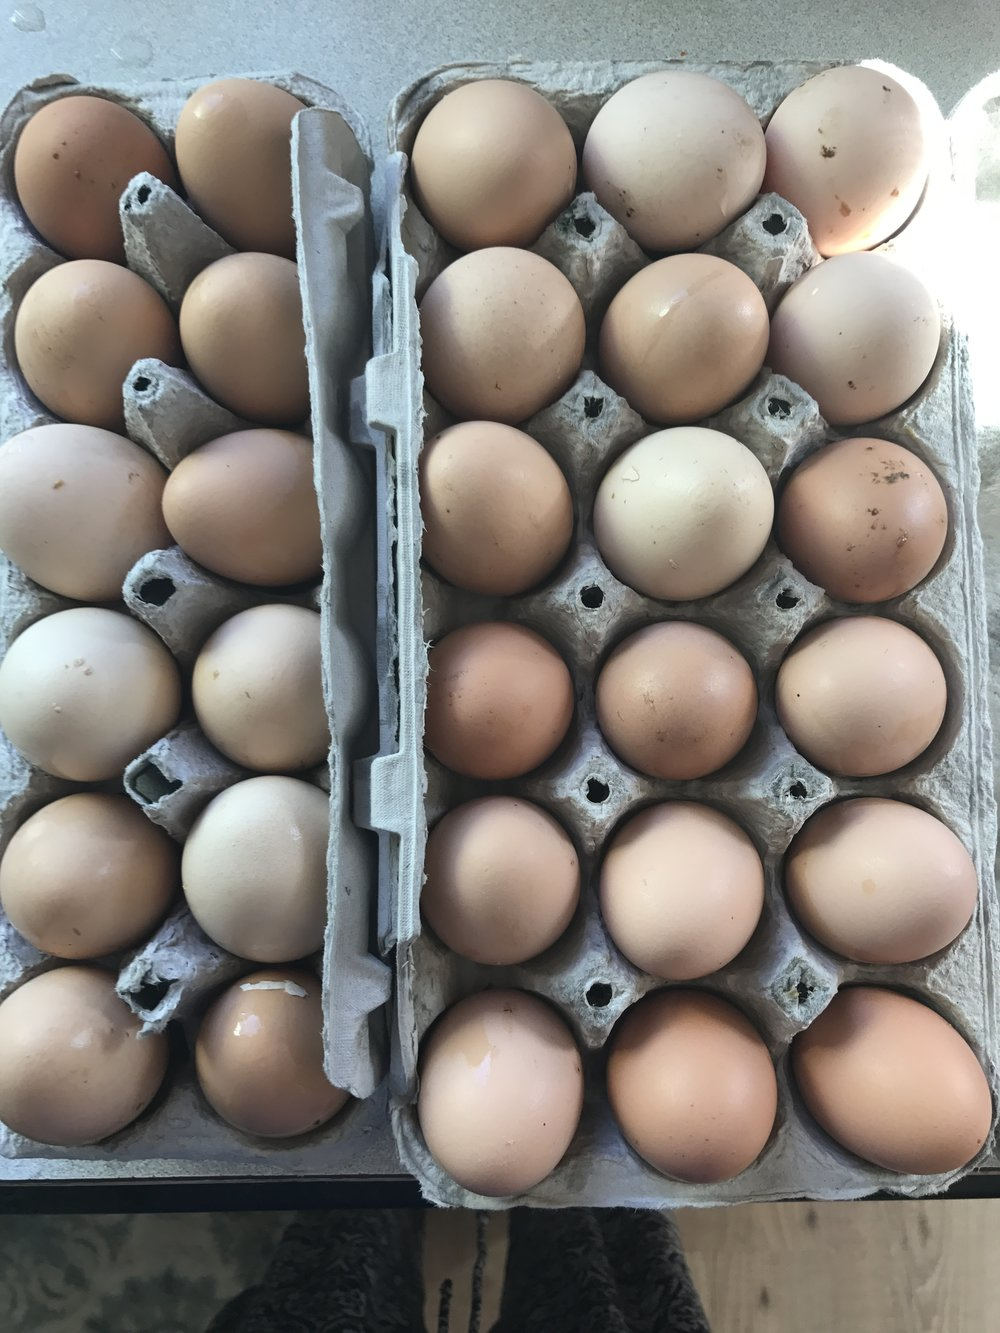 Eggs from the Sthealthy chickens